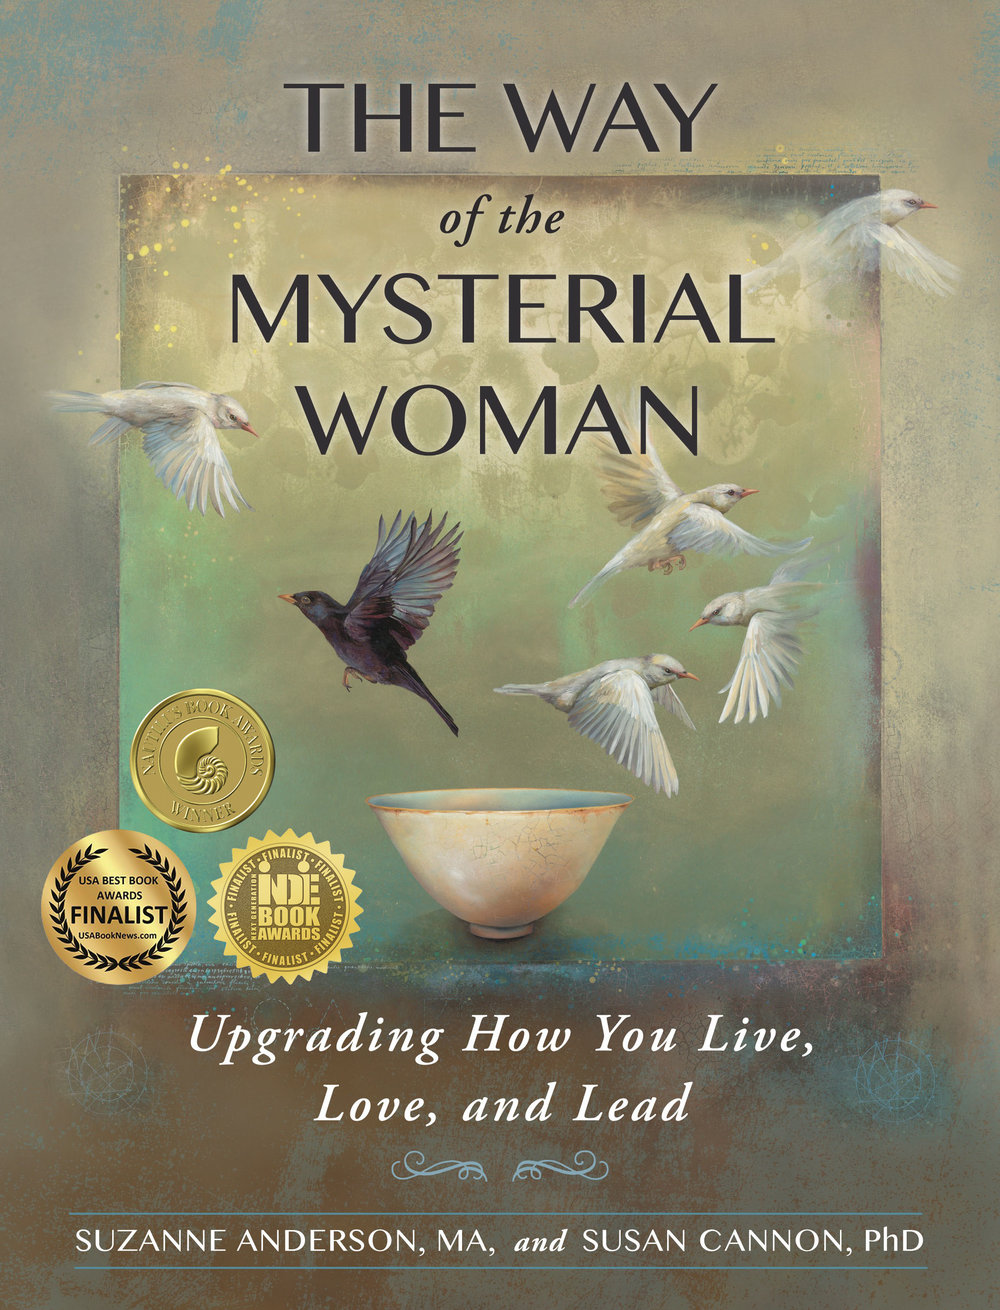 mysterial-woman-cover-awards.jpg